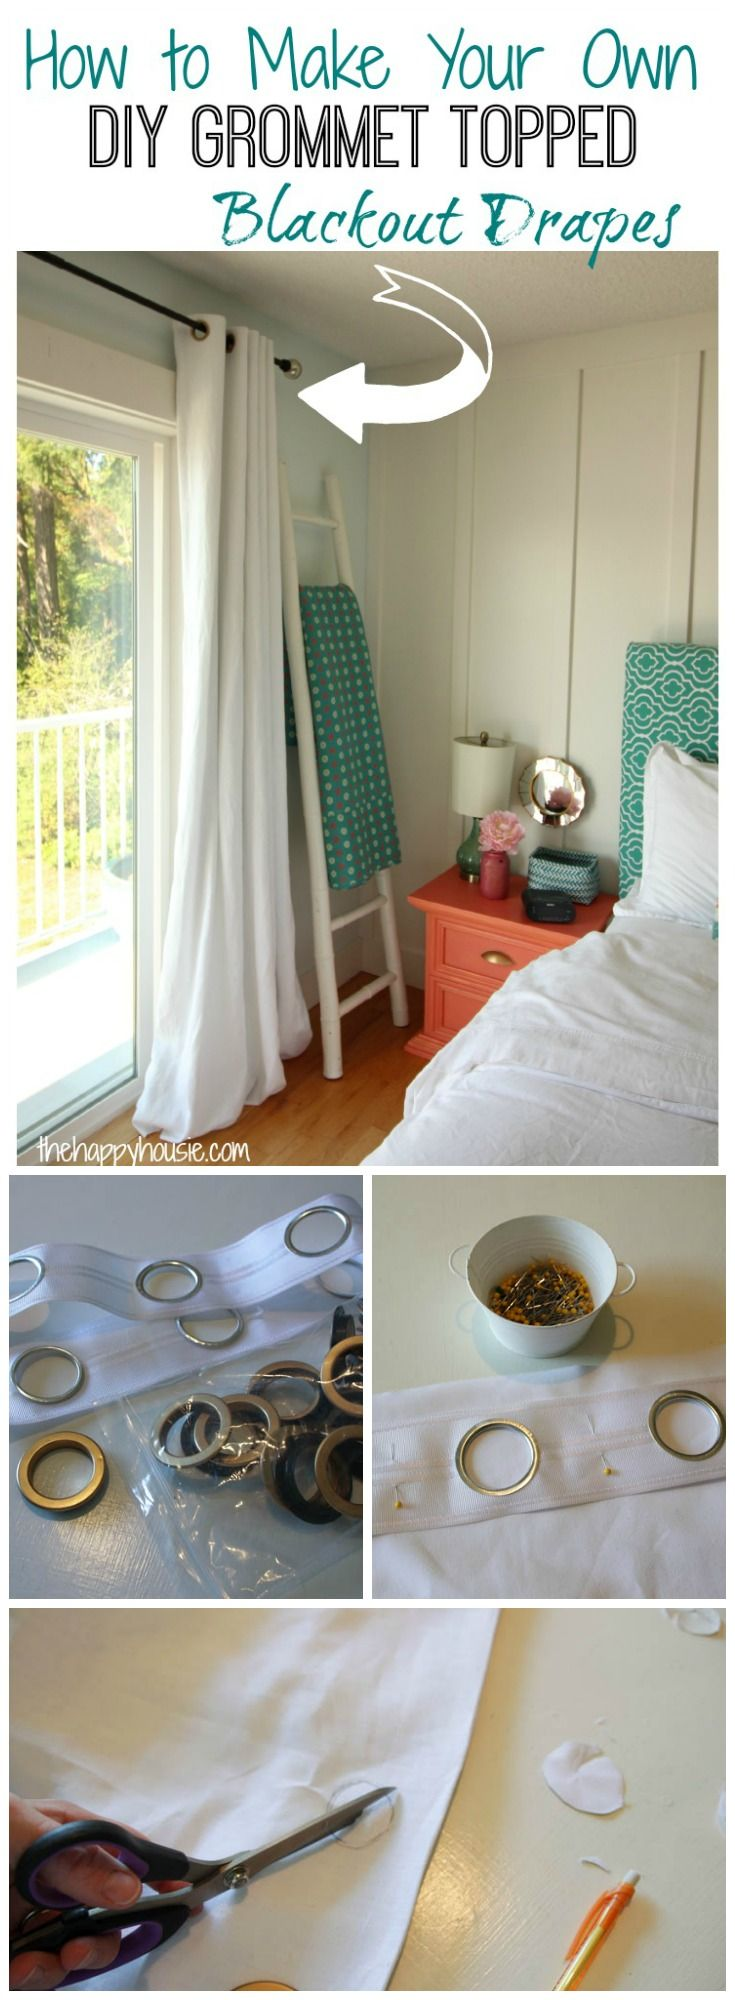 Awesome tutorial on how to make your own DIY Grommet Topped Blackout drapes using grommet tape from Online Fabric Store at thehappyhousie.com